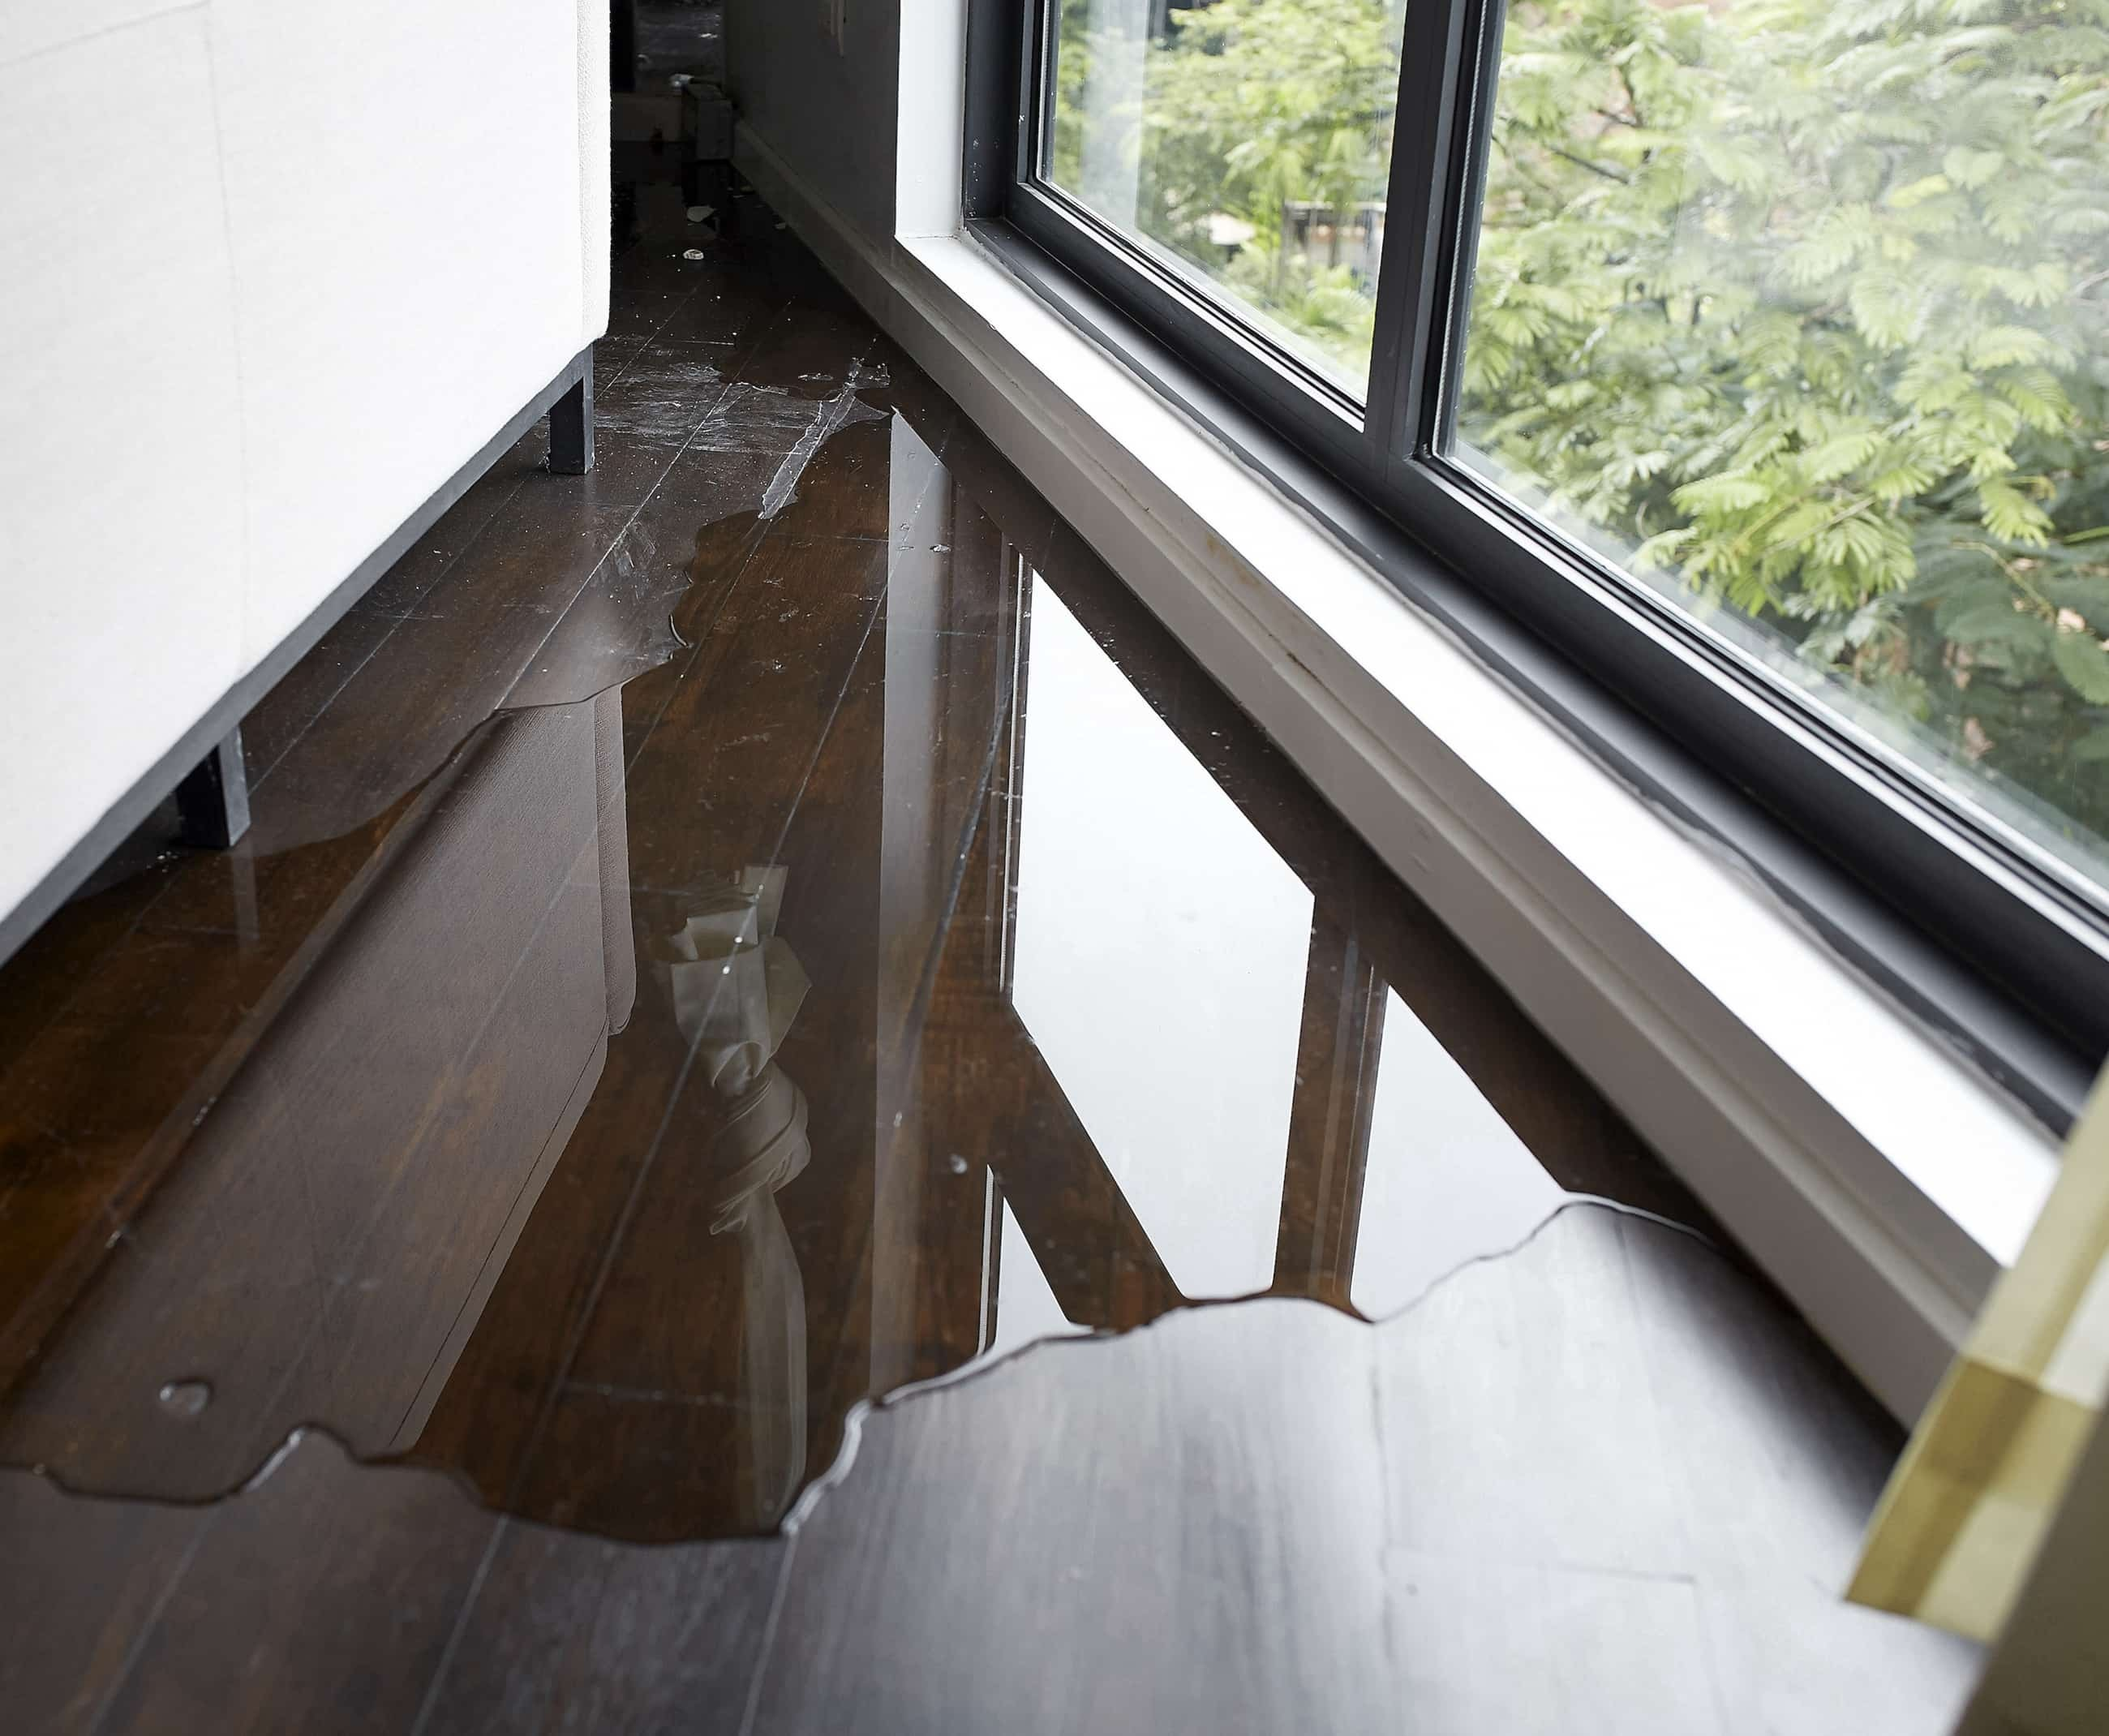 water damage on a wooden floor